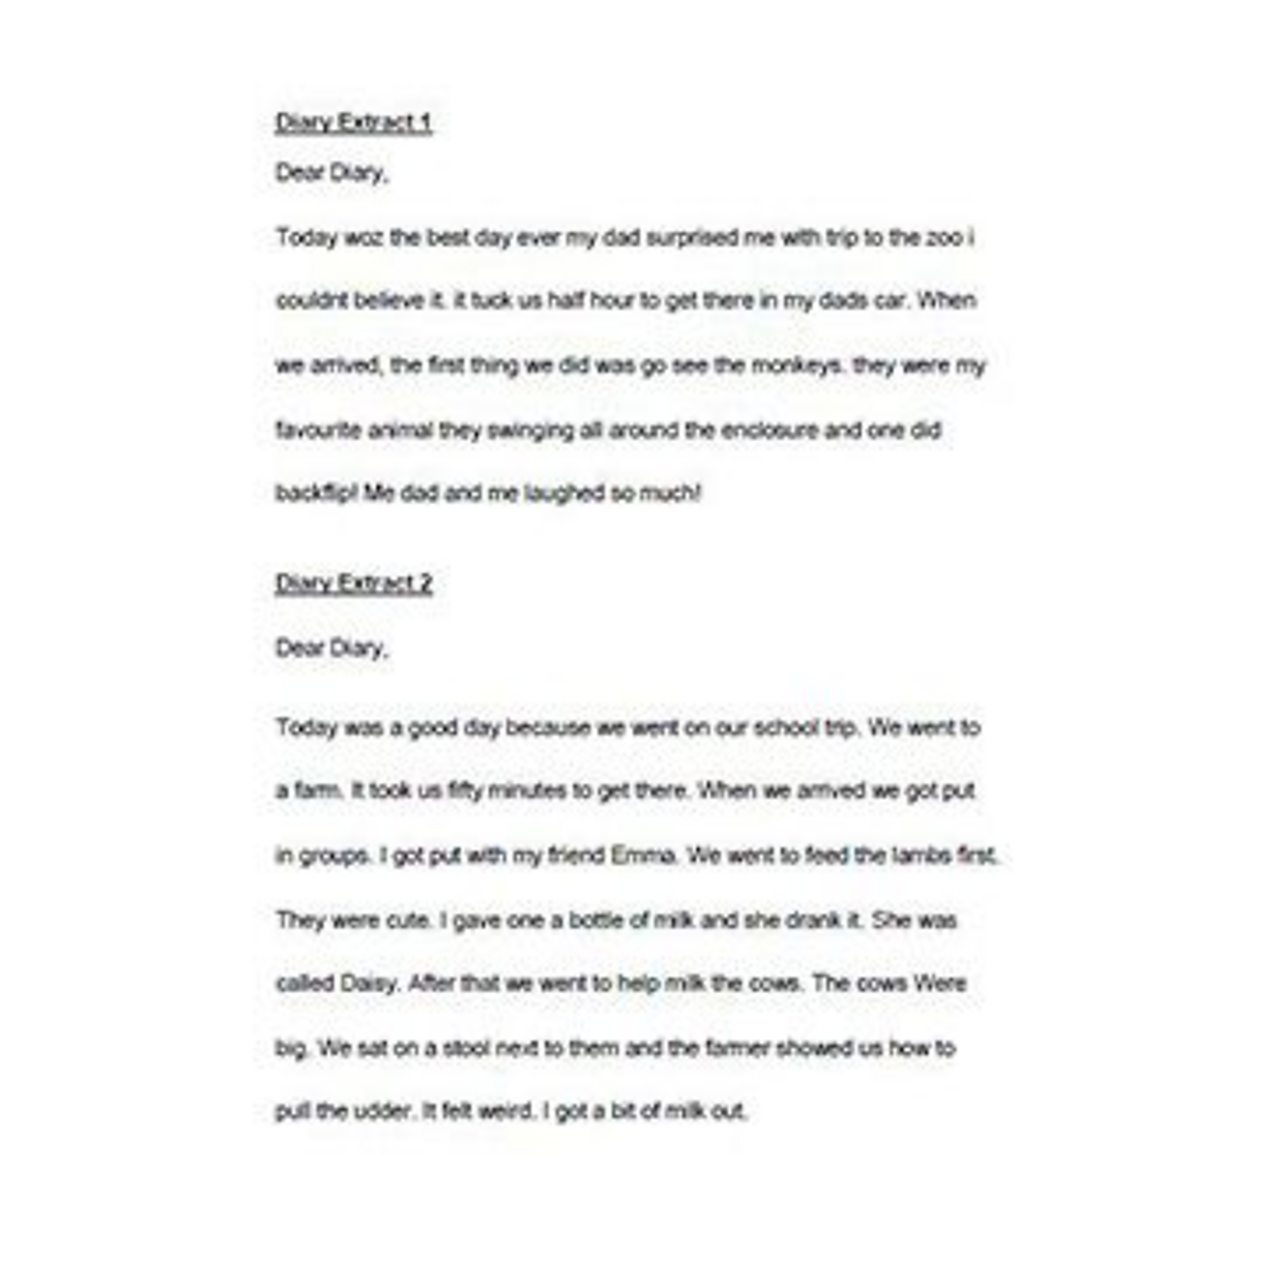 Diary Extracts 1 and 2